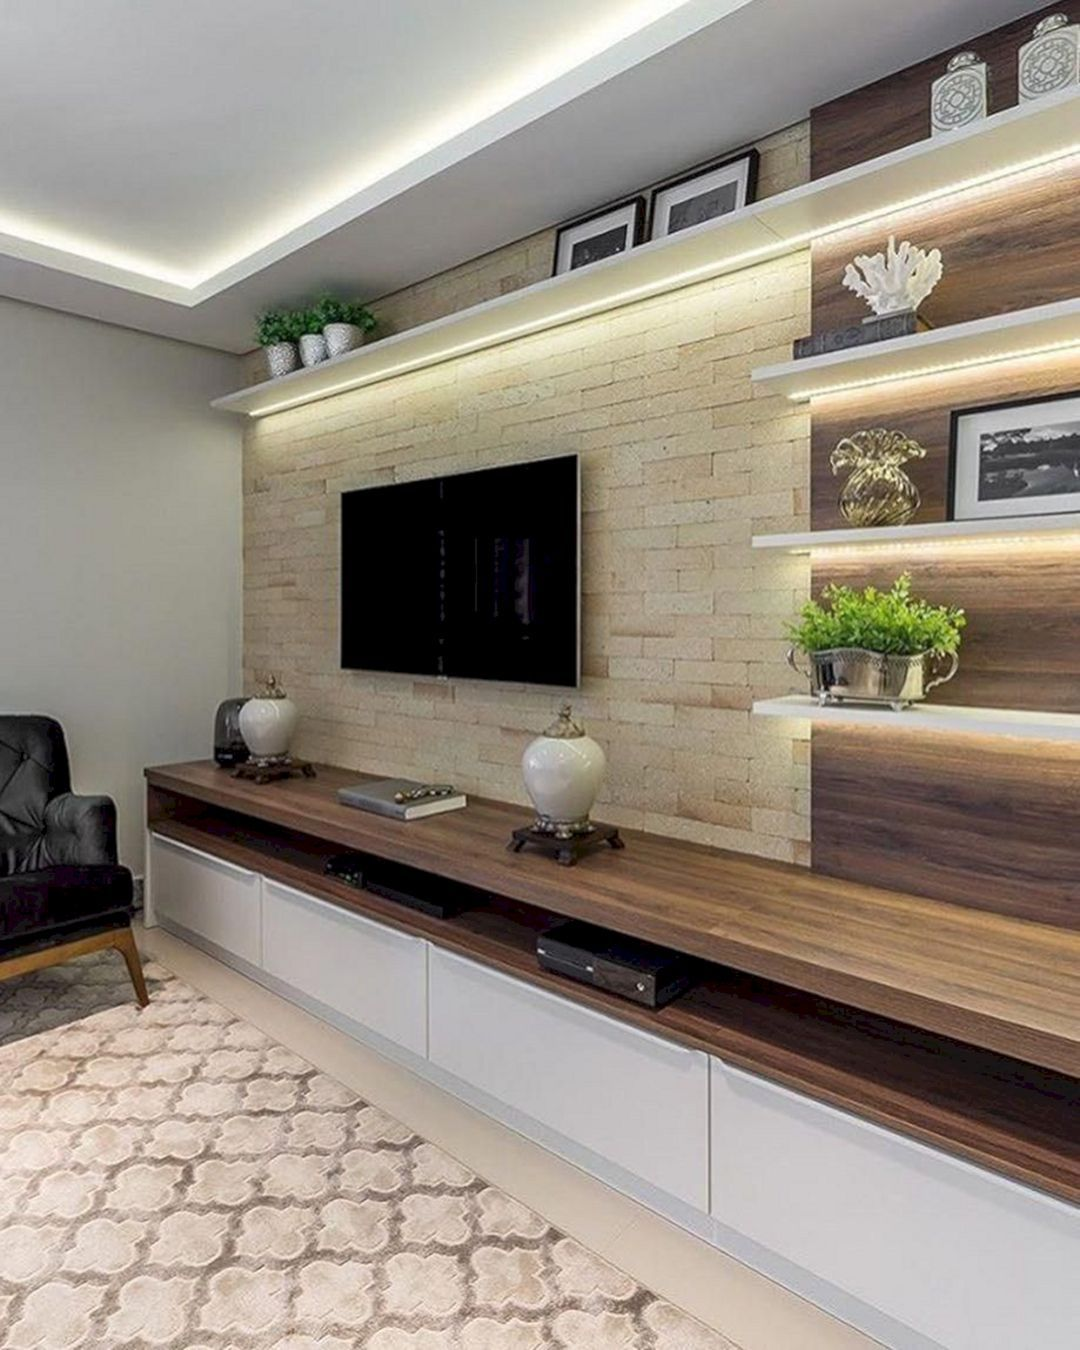 10 Best Modern Tv Wall Ideas For Amazing Home Interiors In 2020 Contemporary Modern Living Room Design Modern Contemporary Living Room Living Room Design Modern